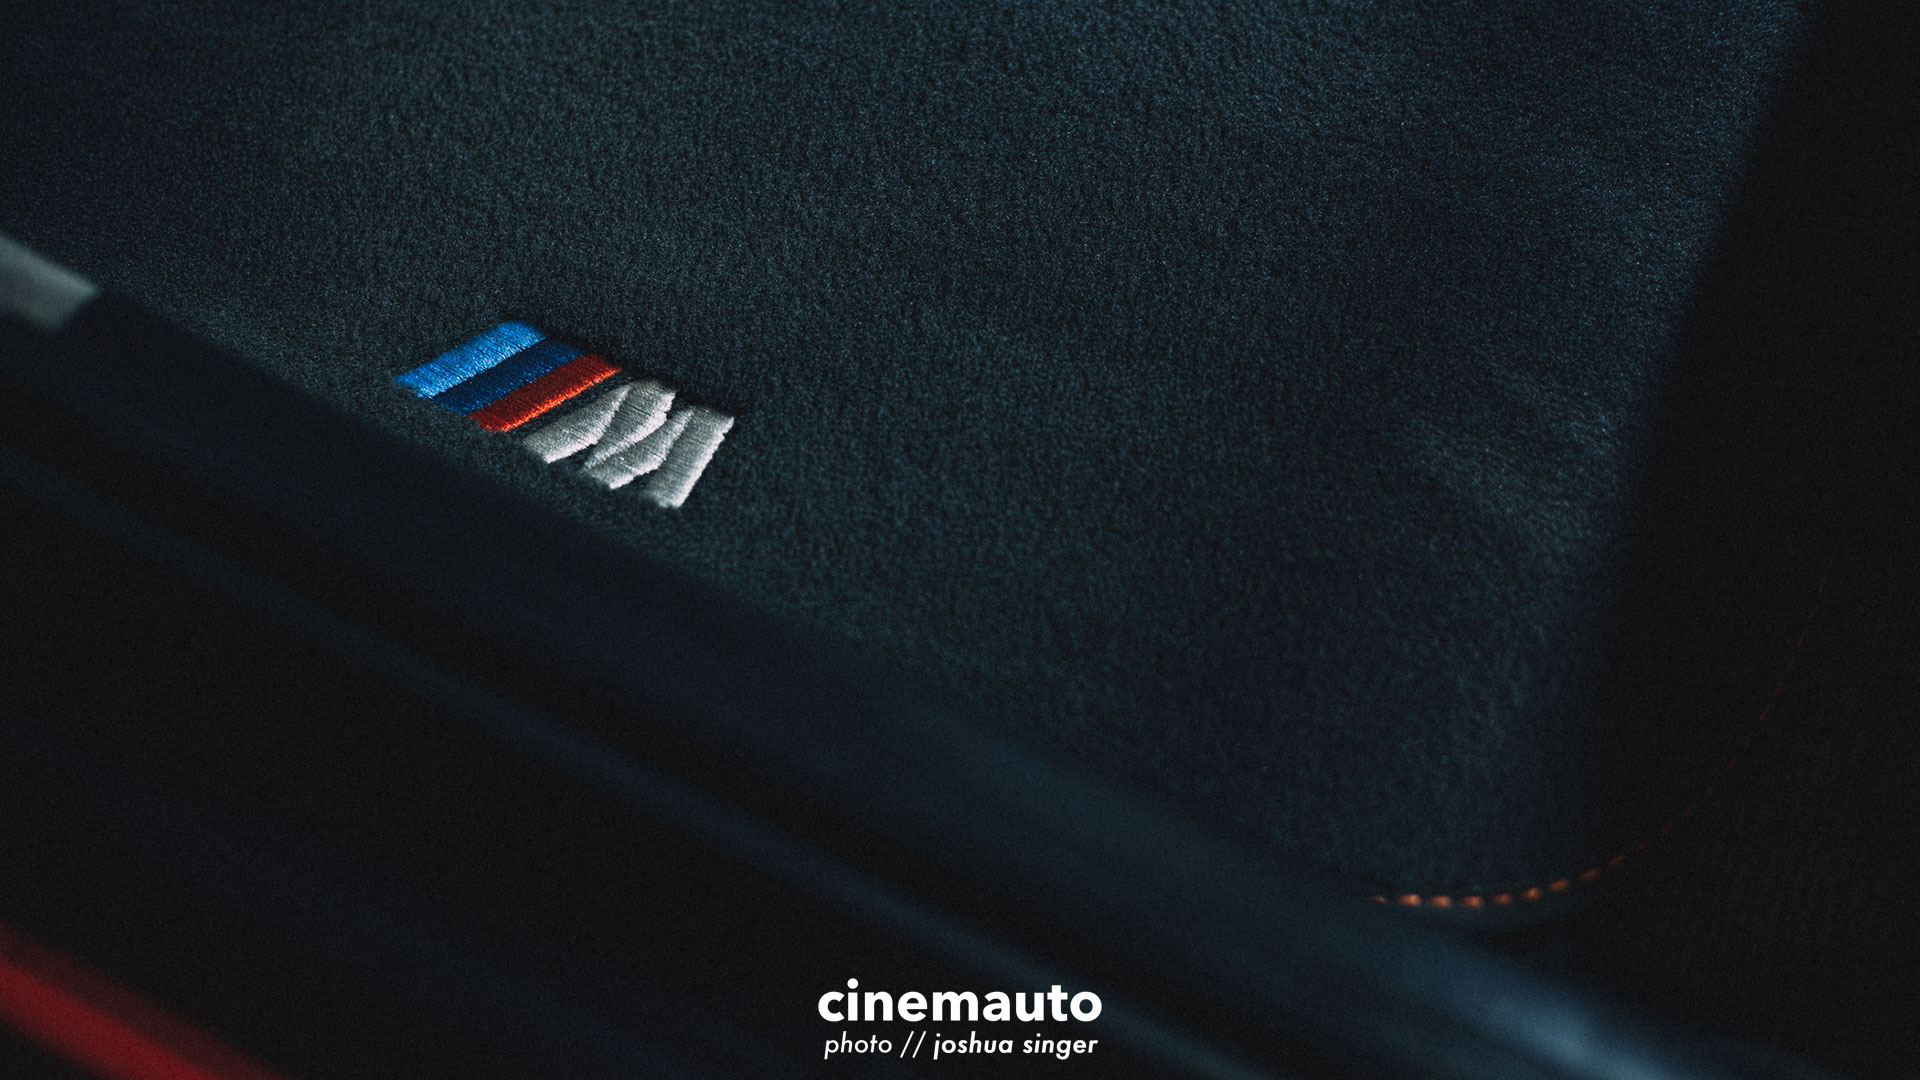 cinemauto-wichita-automotive-videography-midwest-car-cinematography-kk14.jpg